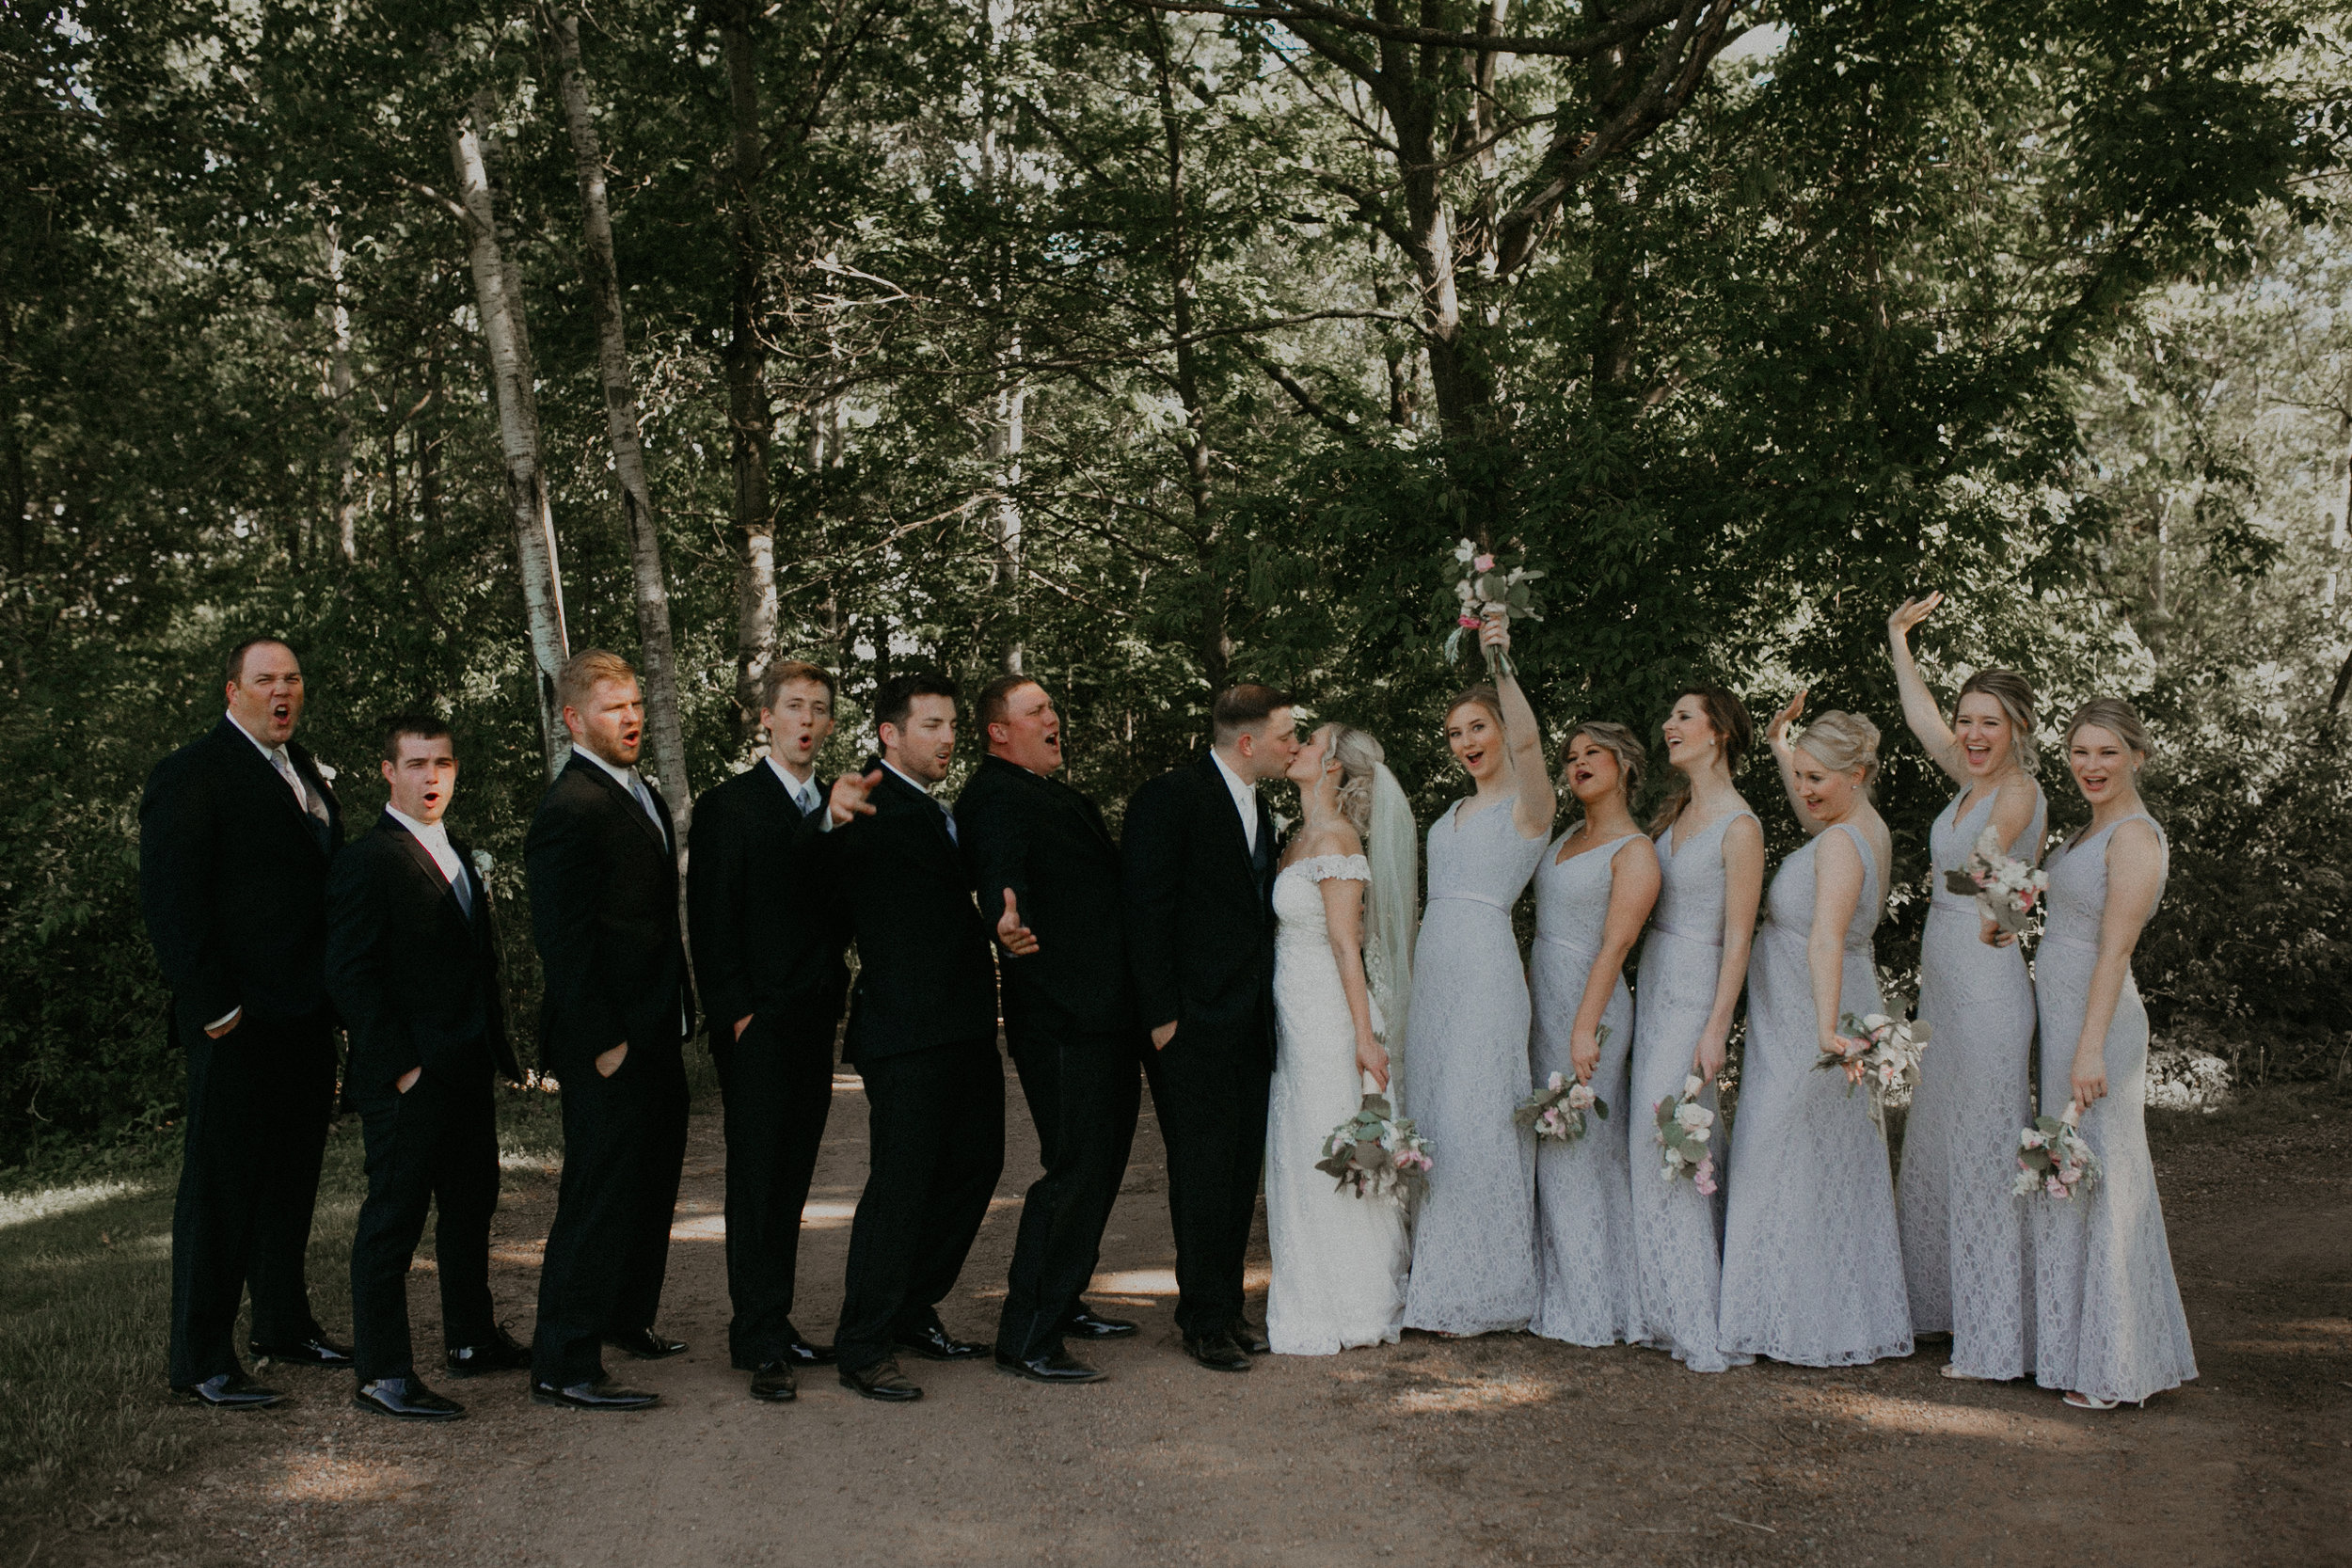 bridal party poses for photographs at RiversEdge Golf Course in Marshfield WI